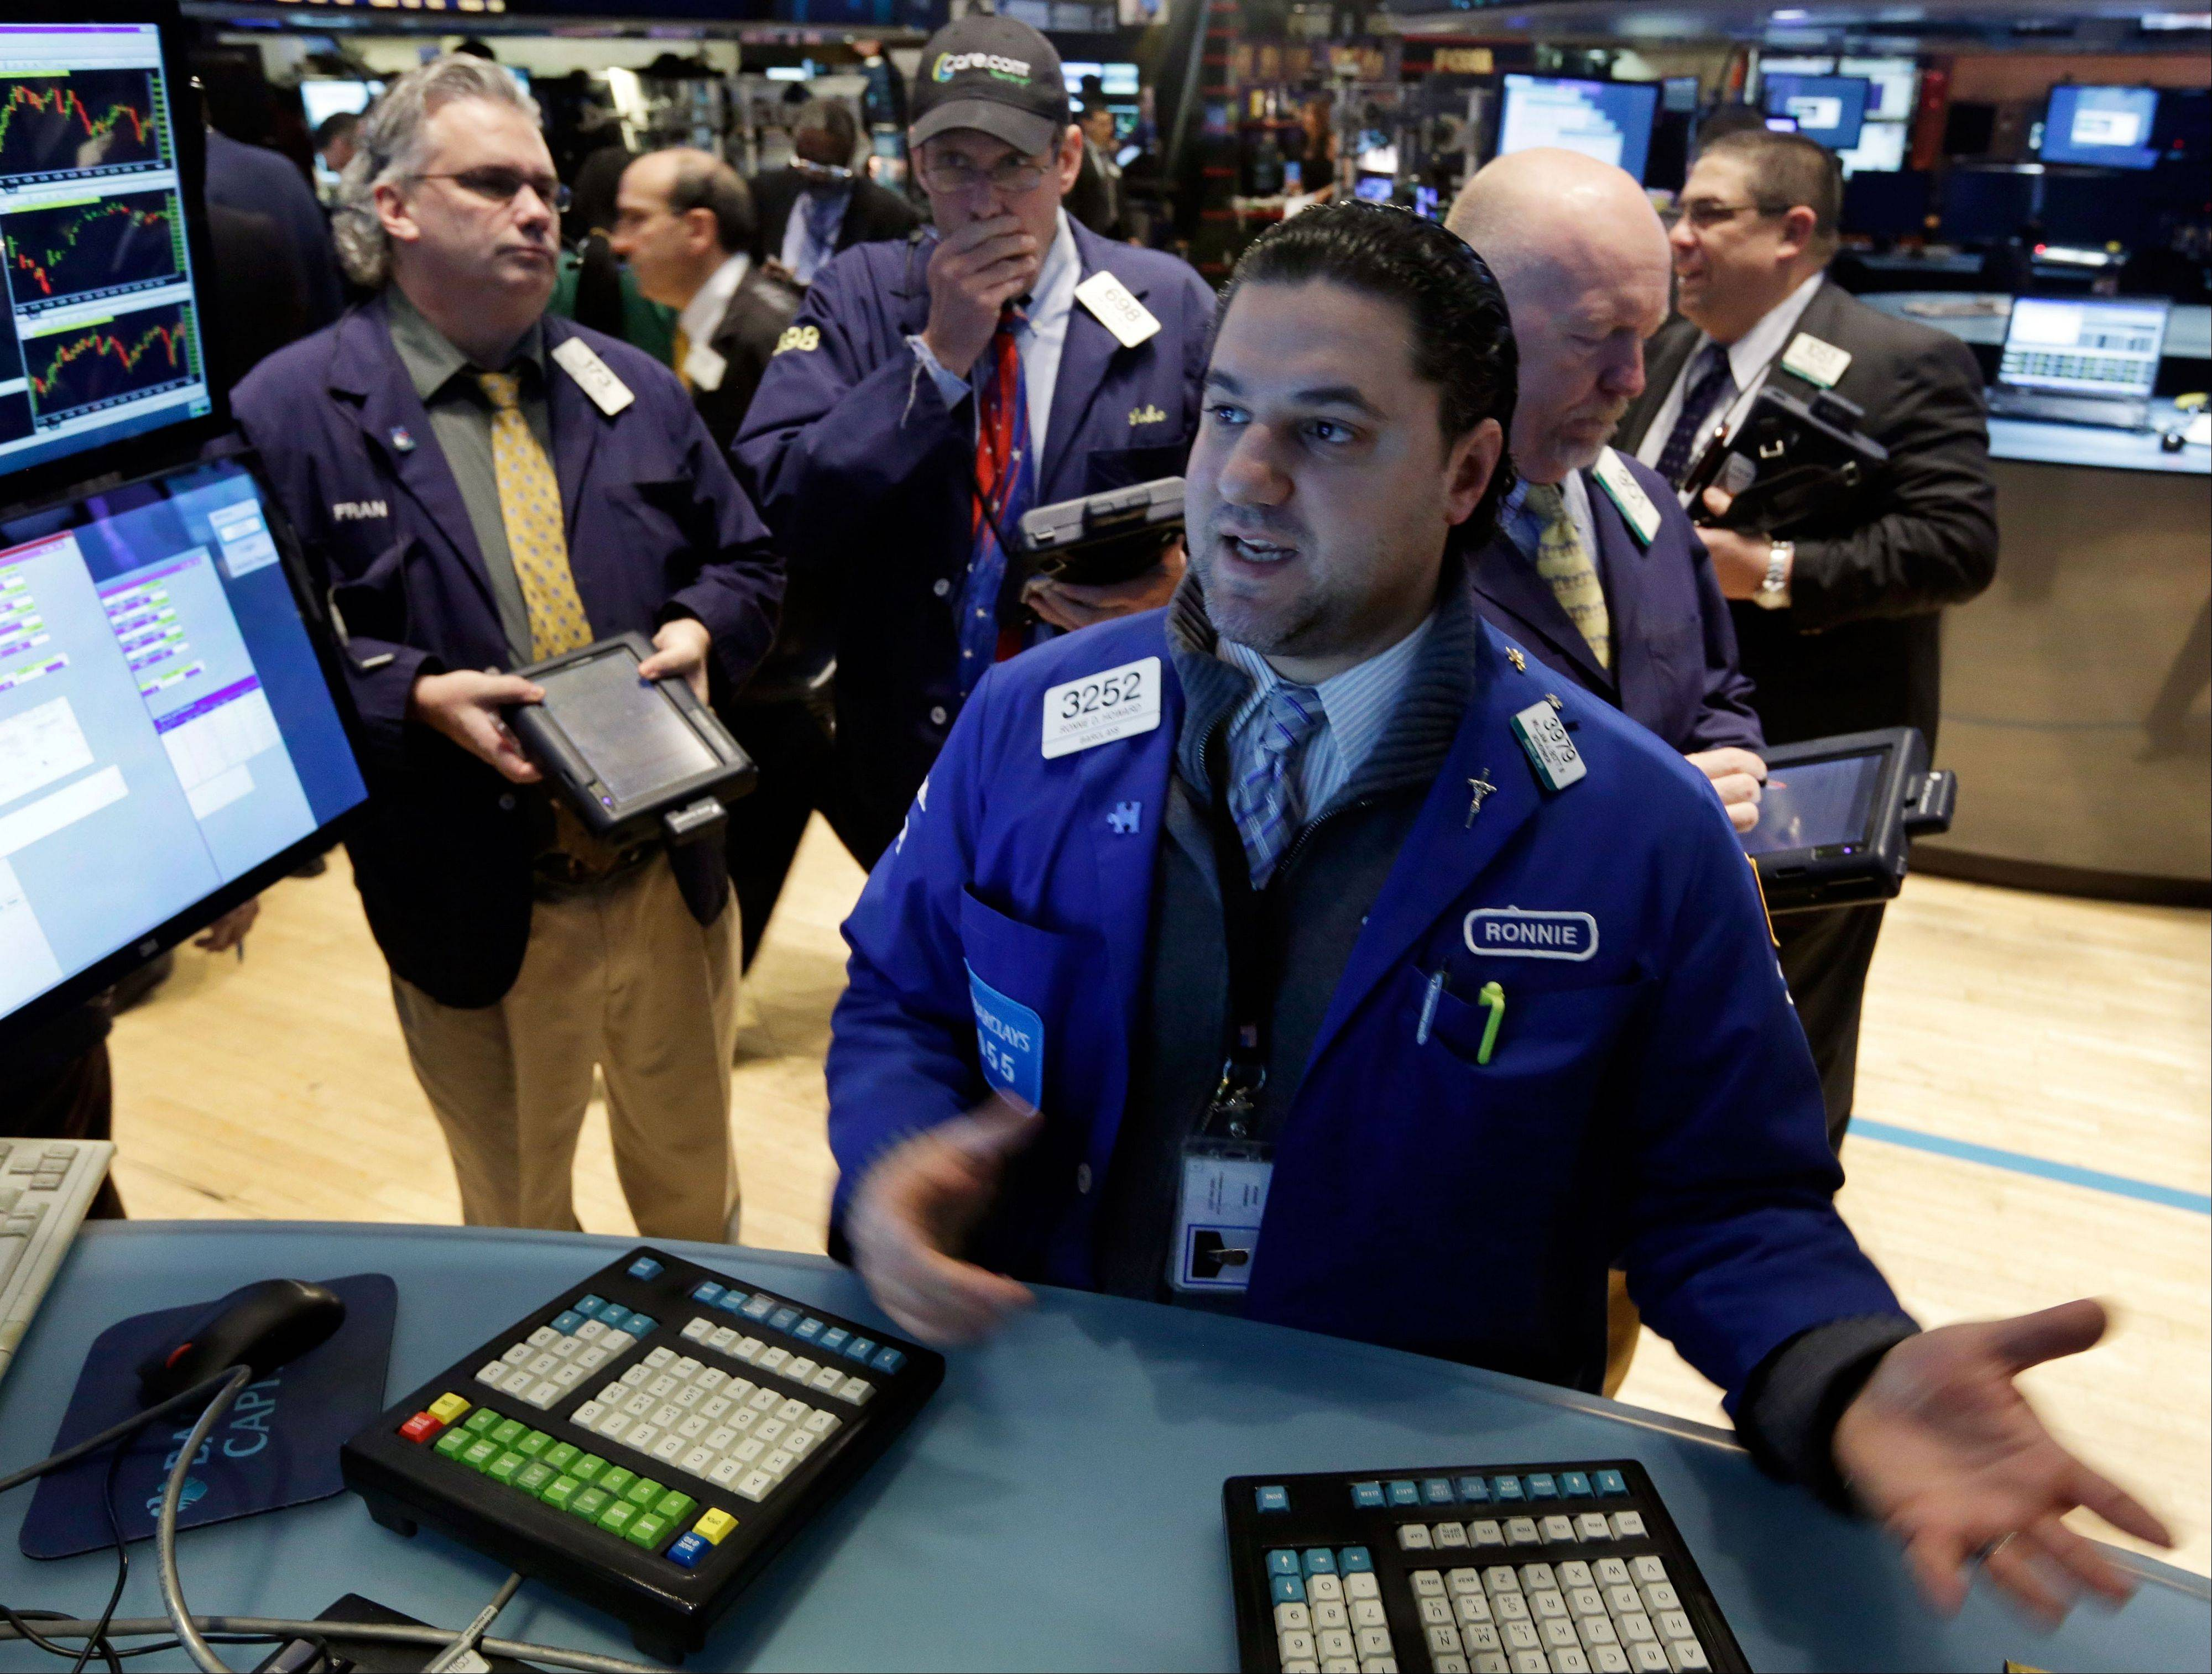 Stocks rose Thursday, sending benchmark indexes to their best gains this year, as claims for unemployment benefits fell and earnings from Walt Disney Co. to Akamai Technologies Inc. surpassed estimates.